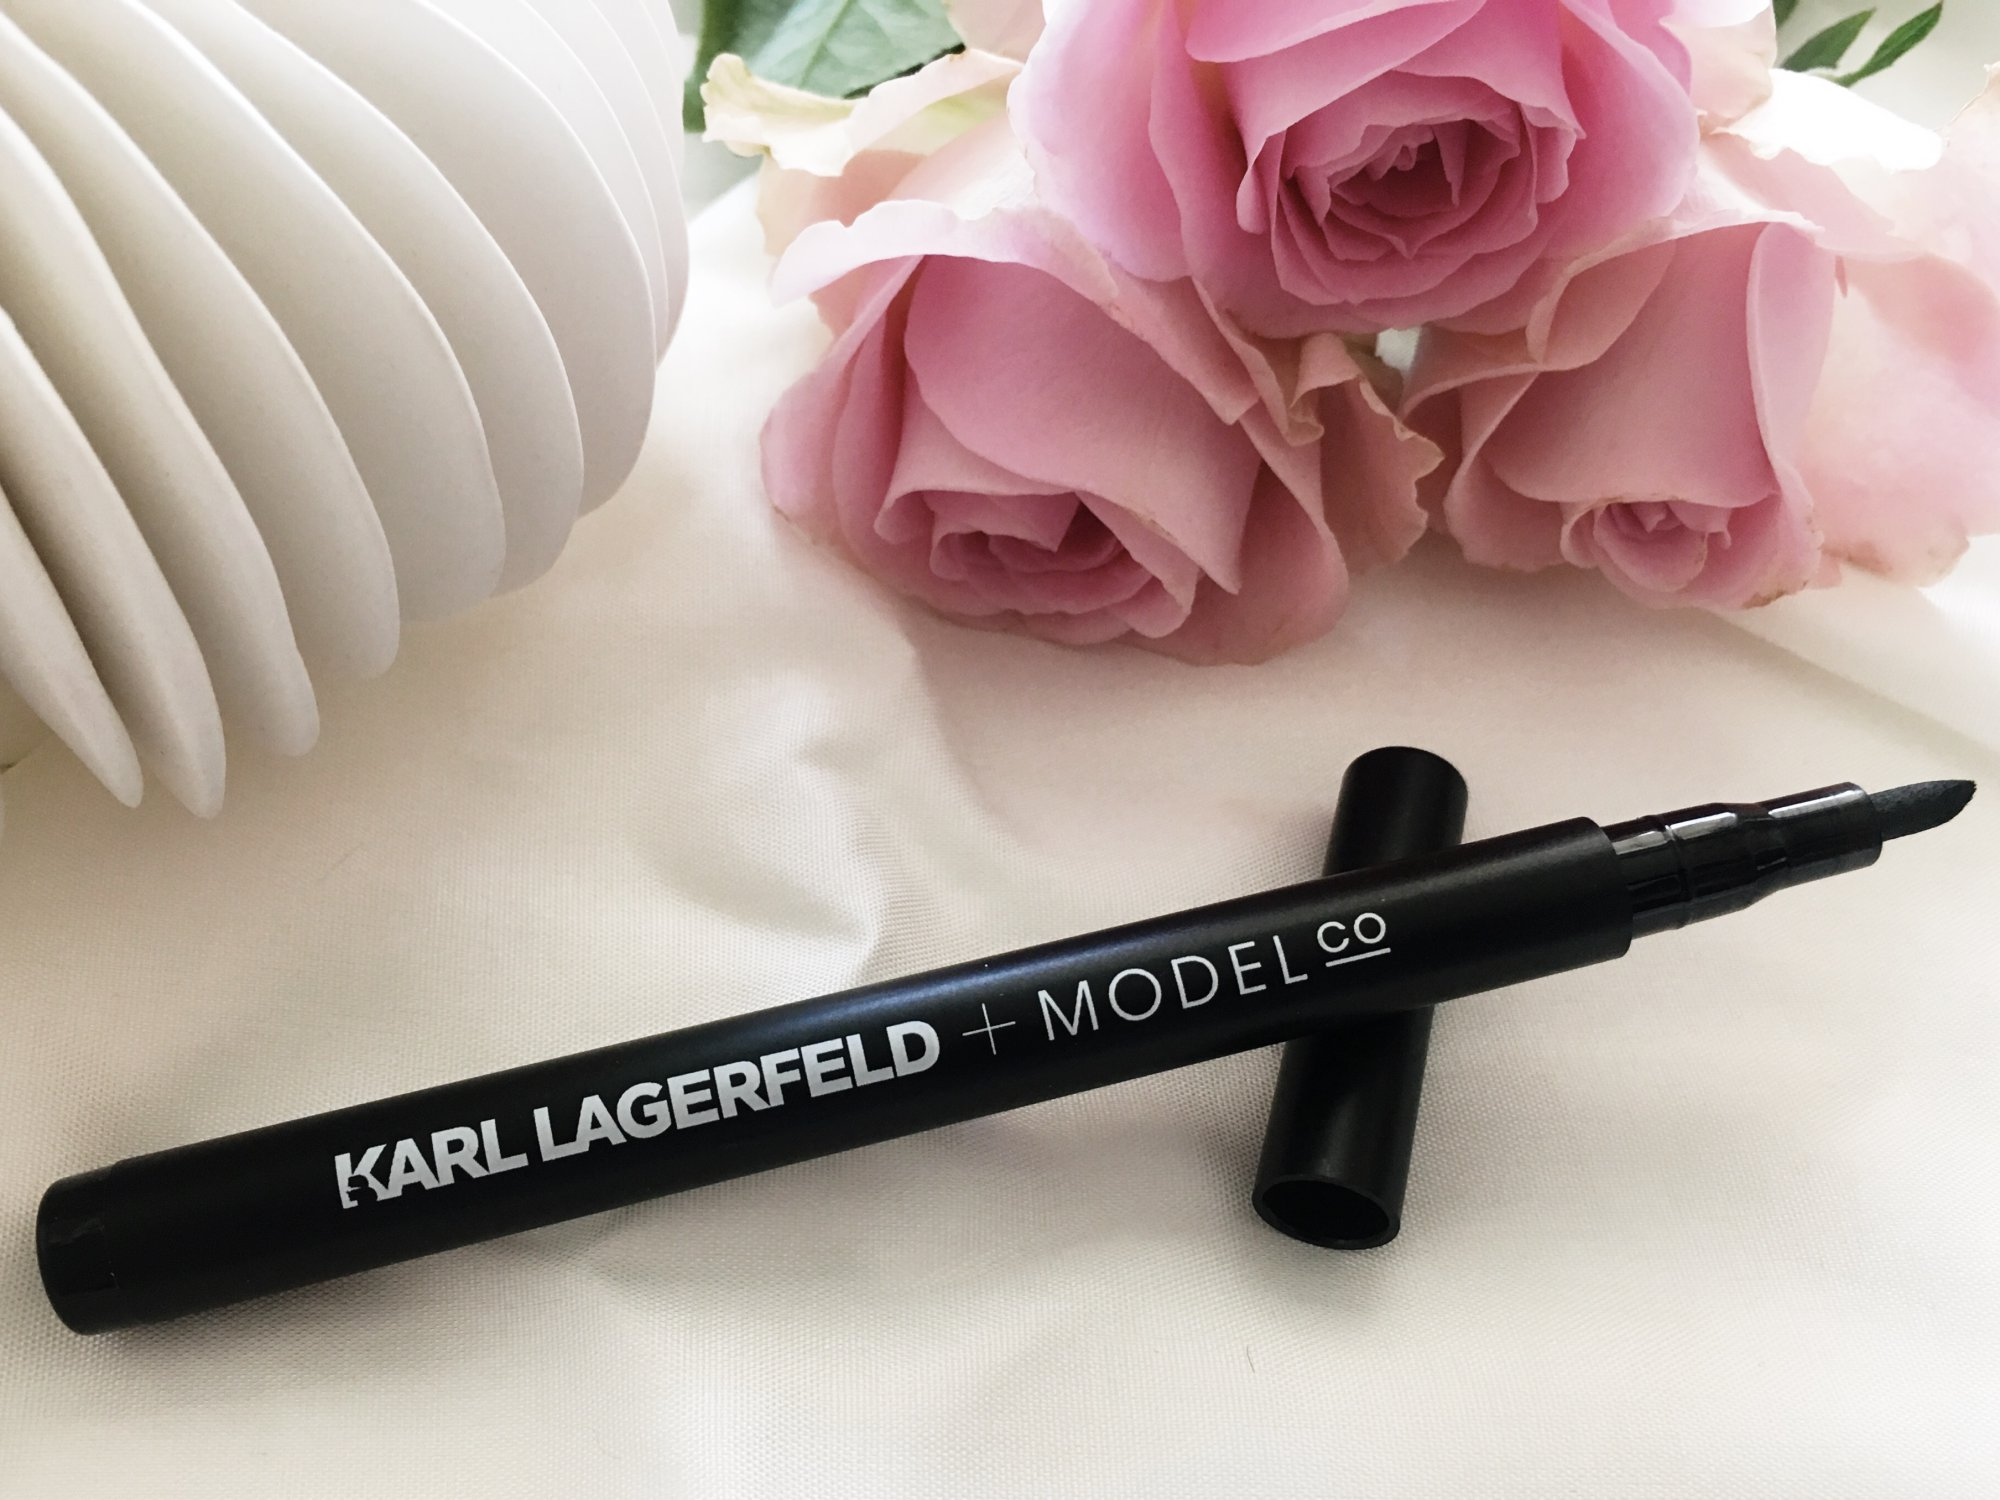 Karl Lagerfeld Edition